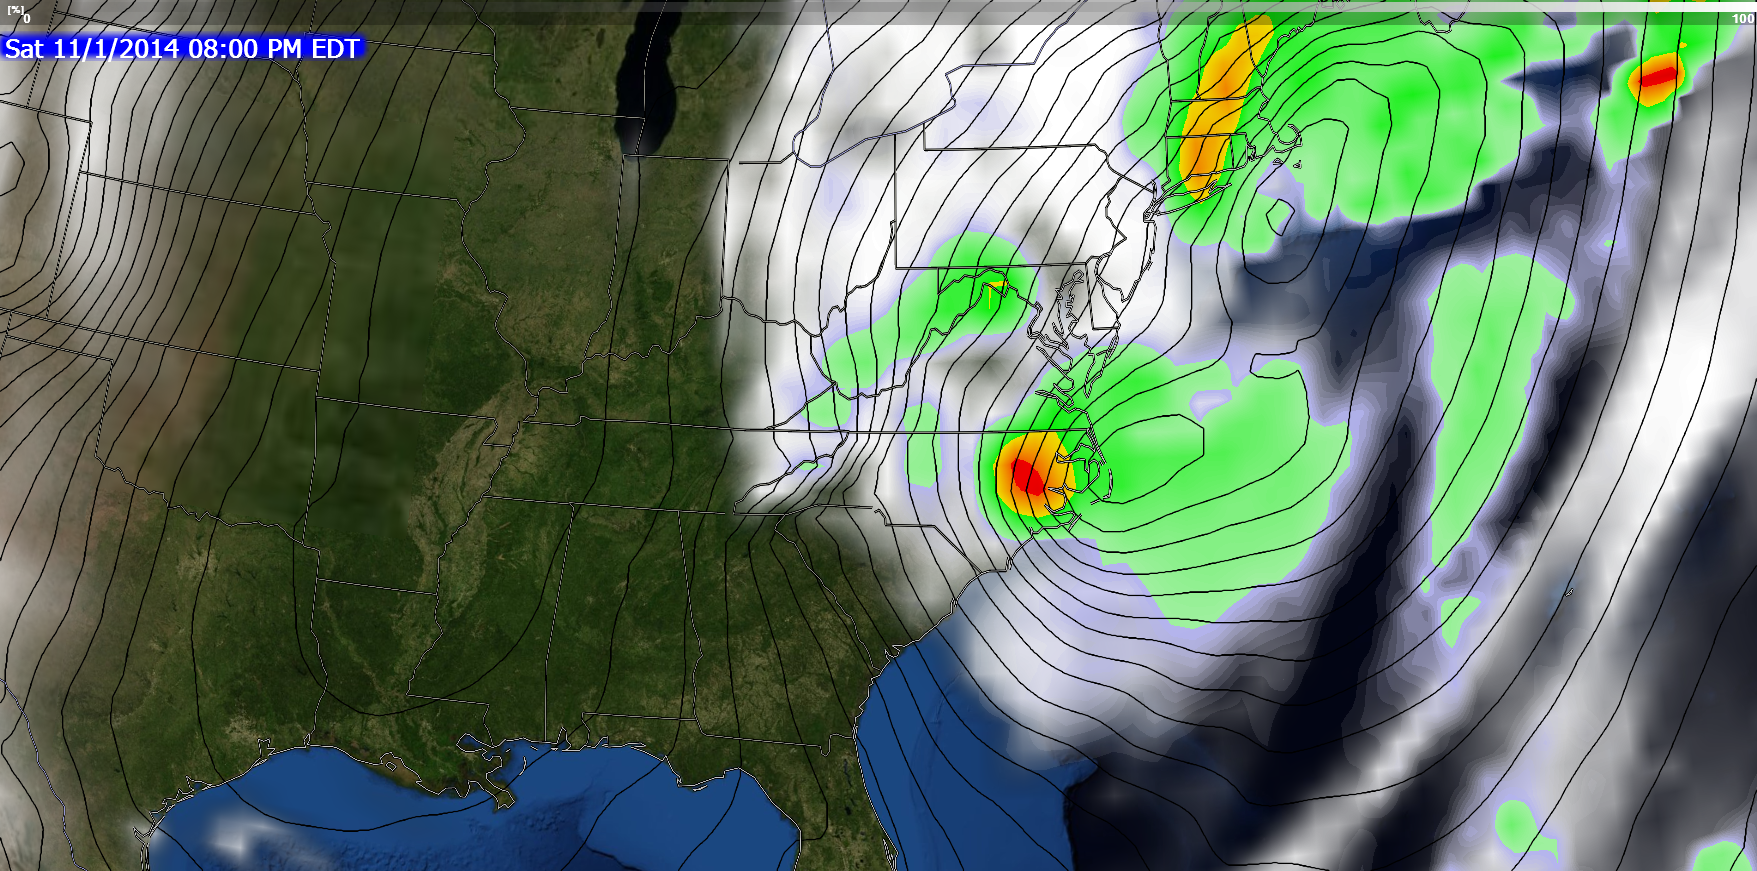 18Z GFS has the bulk of heaviest rain over ENC by Saturday evening.